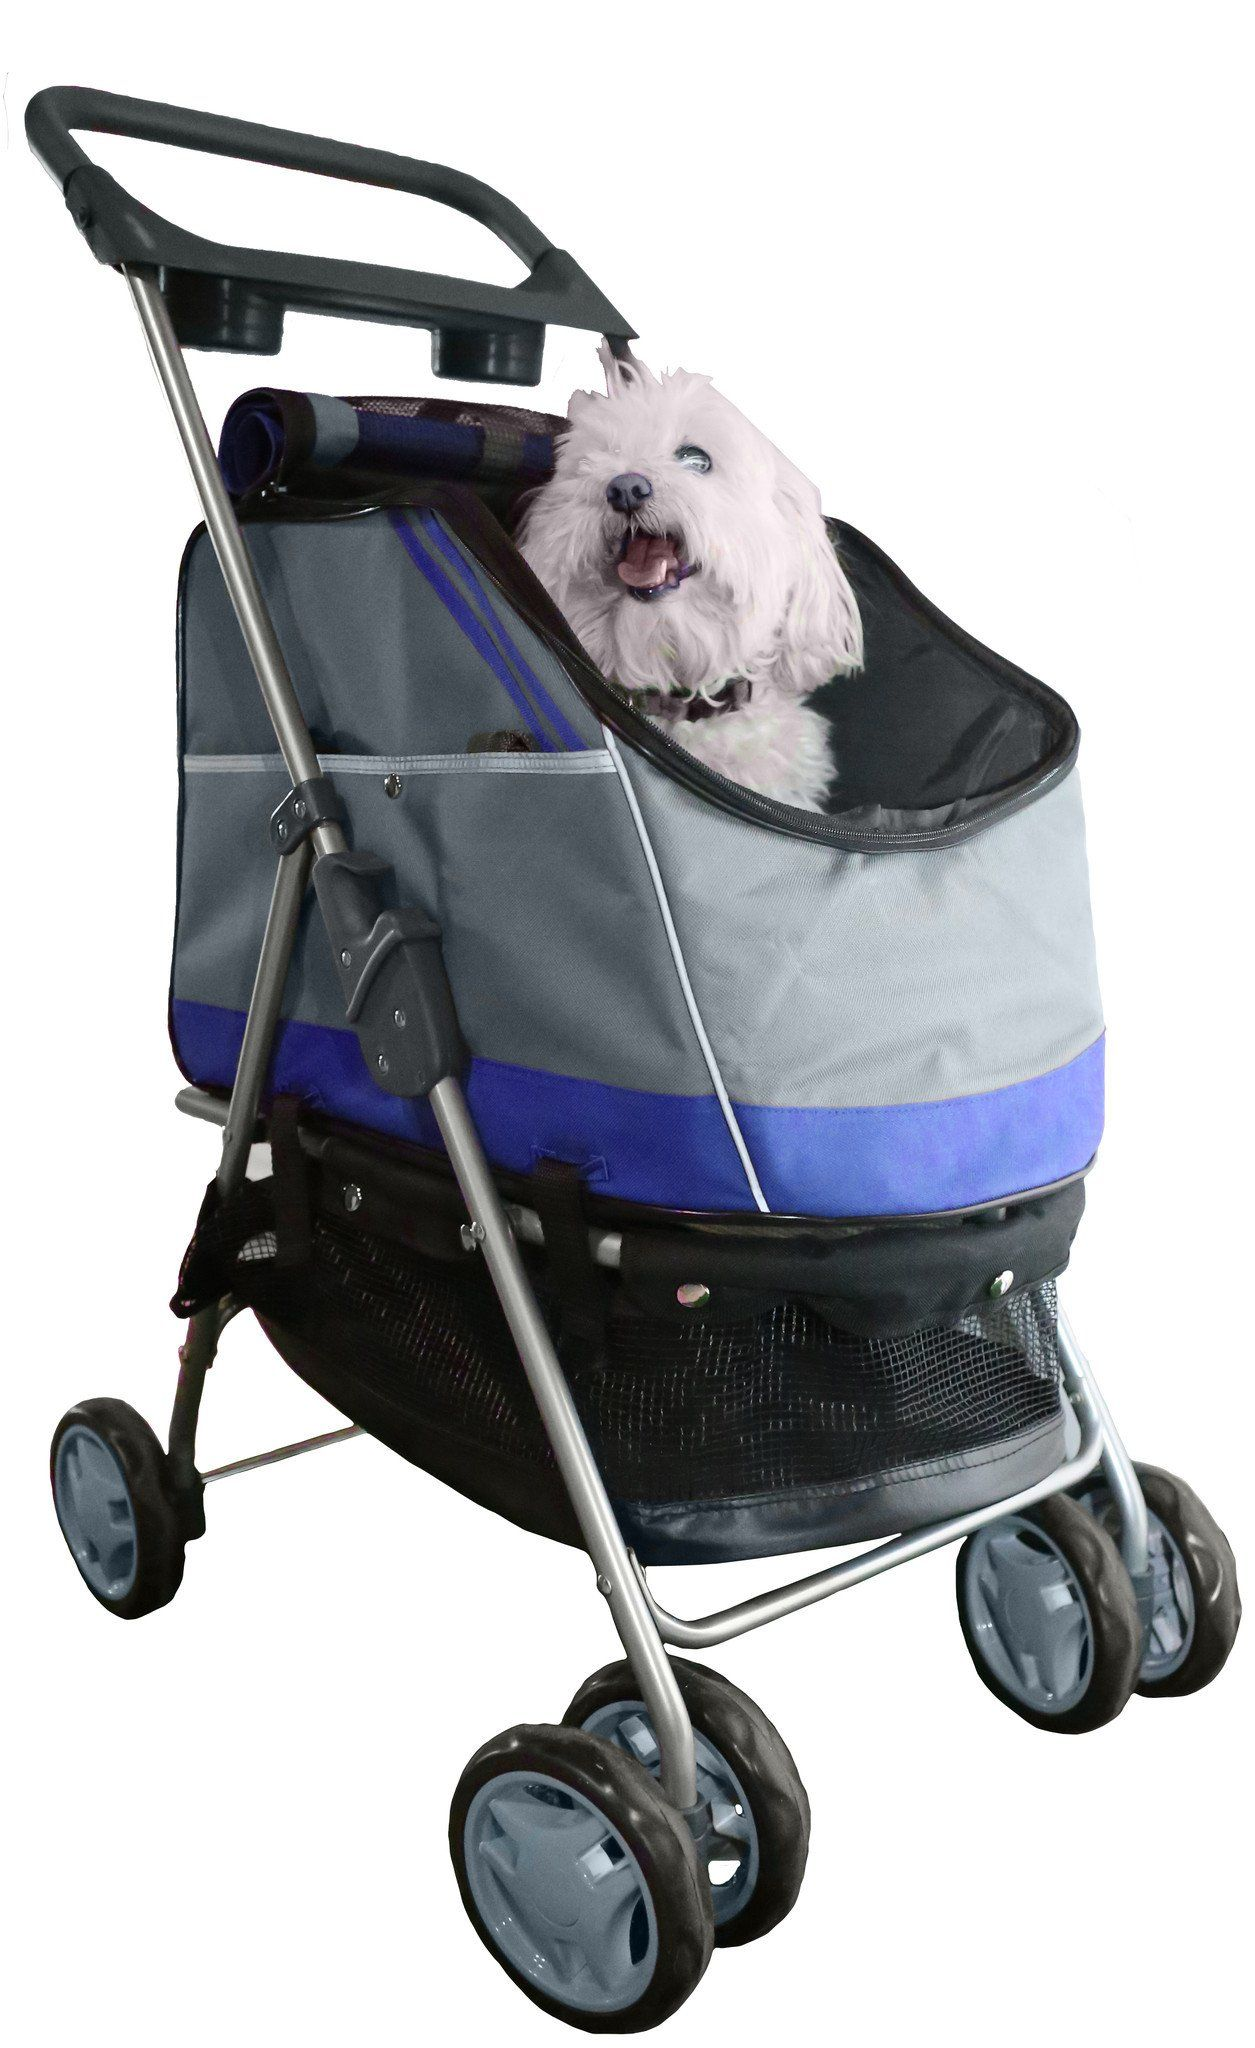 All surface covertible pet stroller and car carrier pet